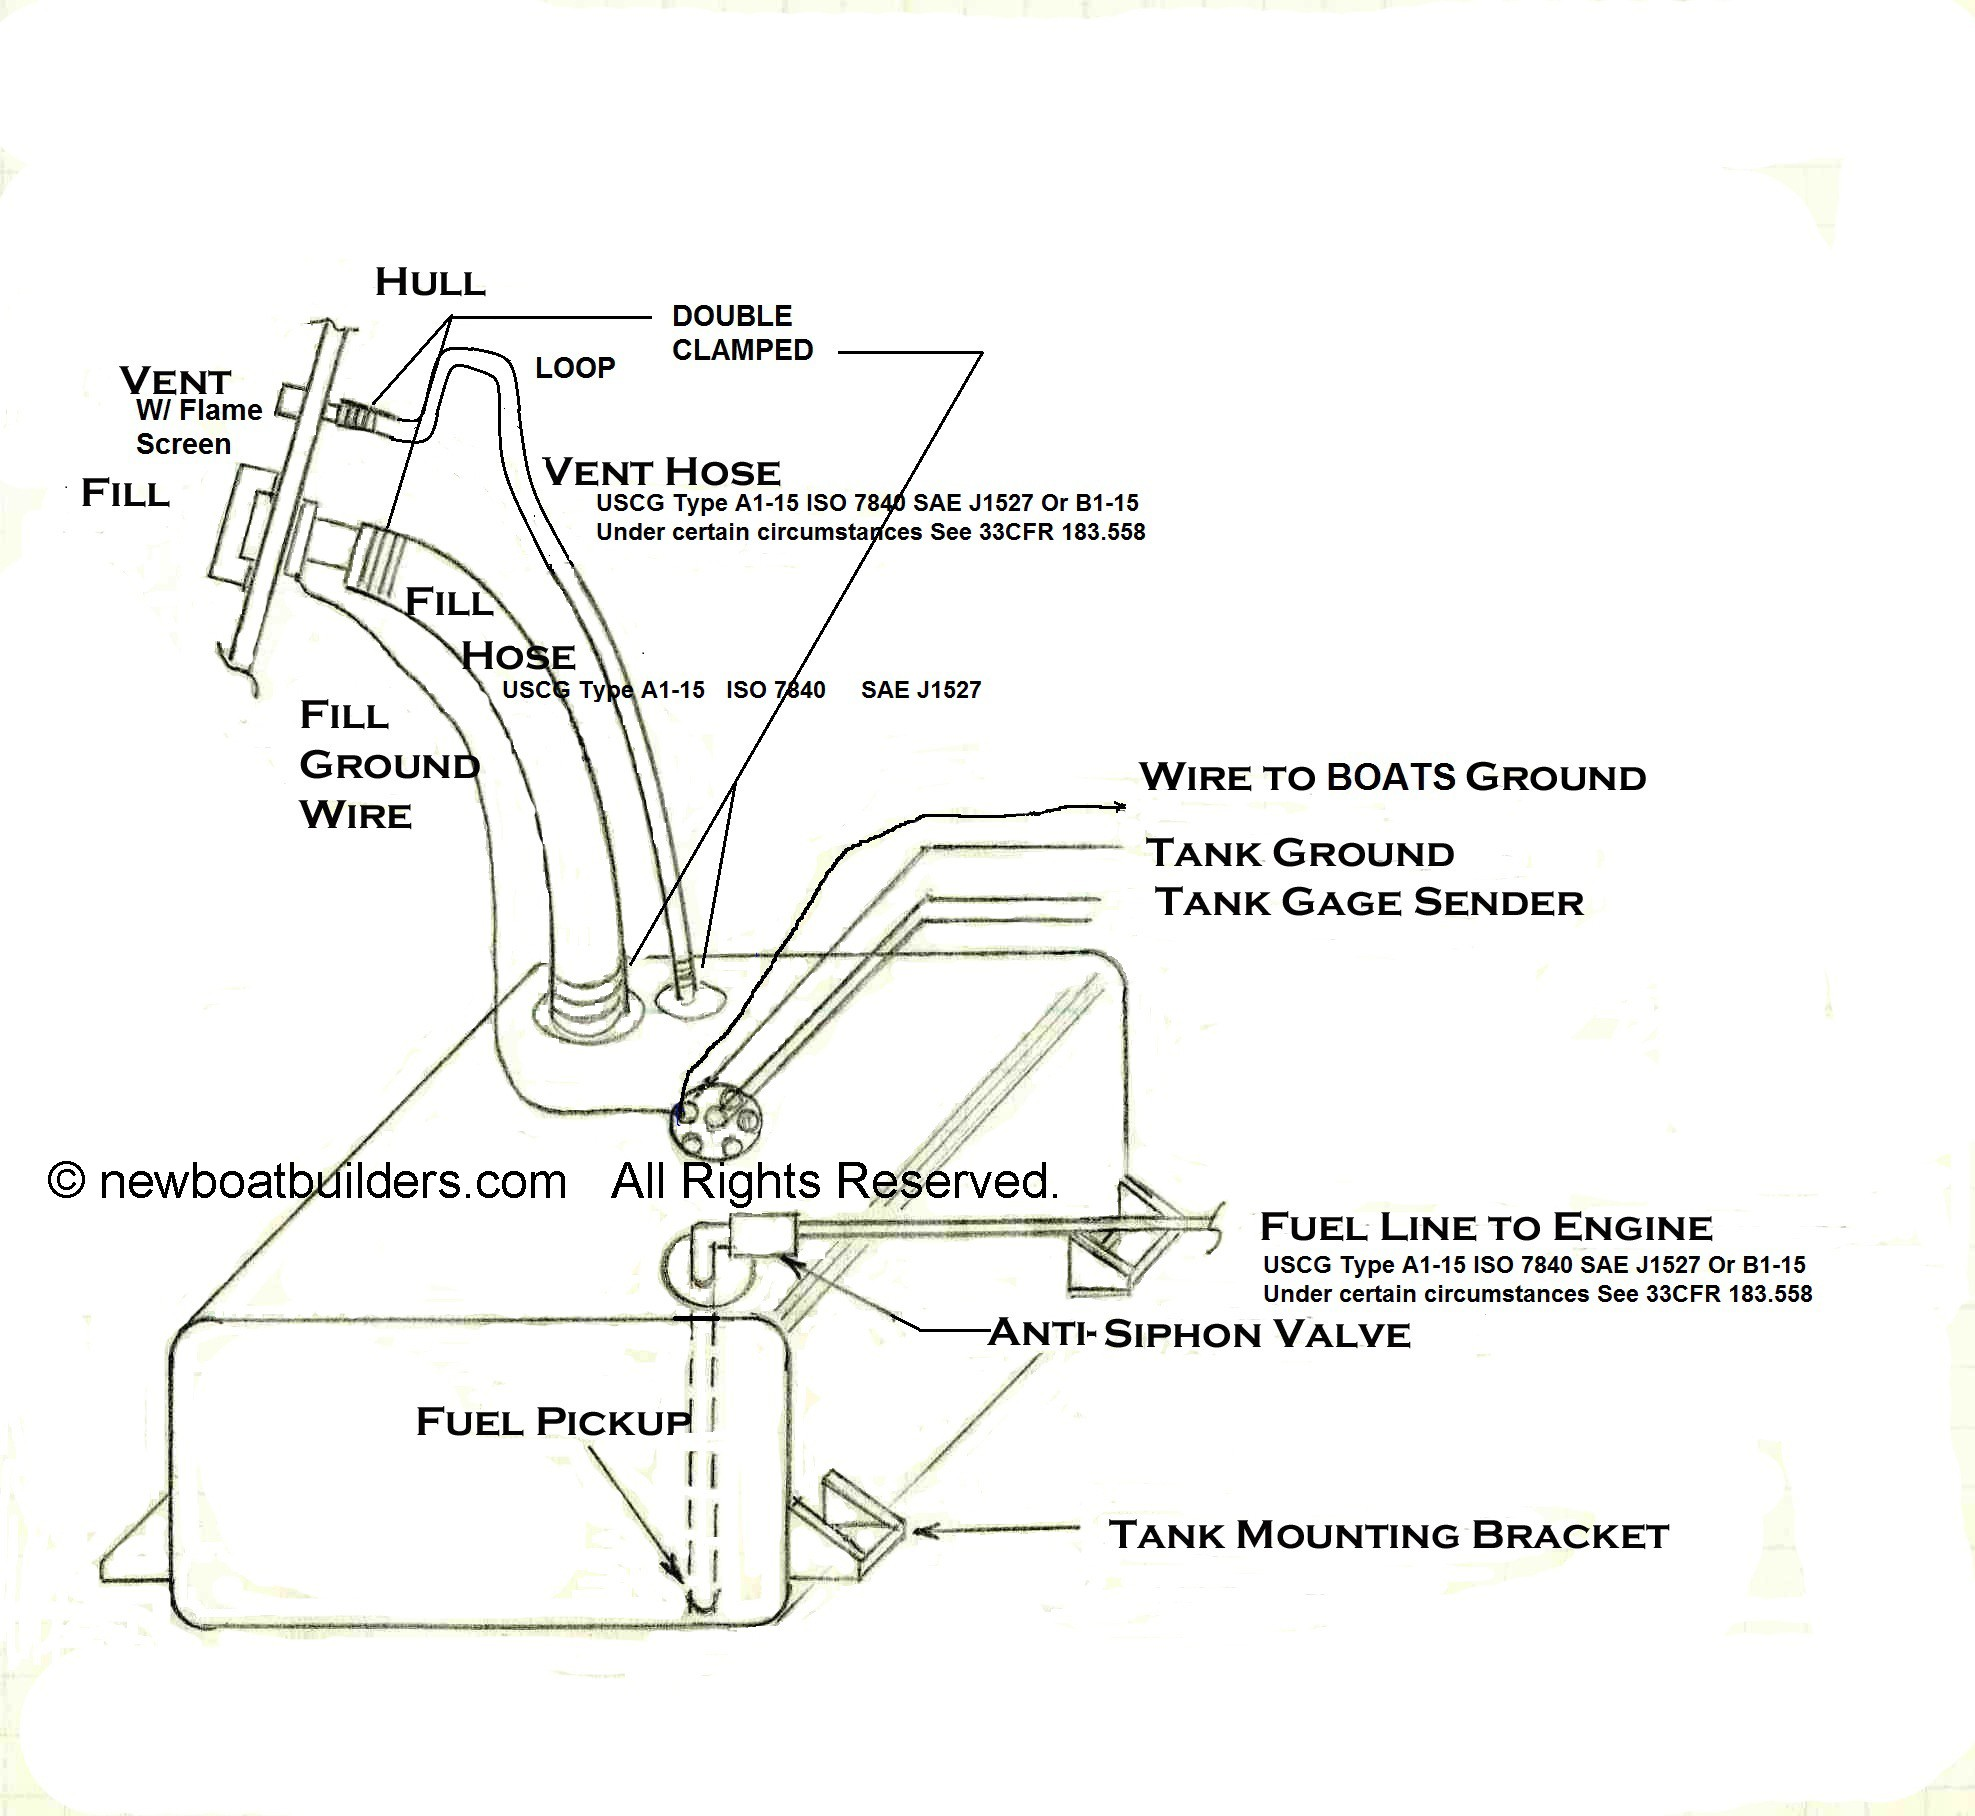 01 7 3 Engine Wire Diagram Electrical Wiring Diagrams Glow Plug 2000my Diesel Fuel System Ford 73